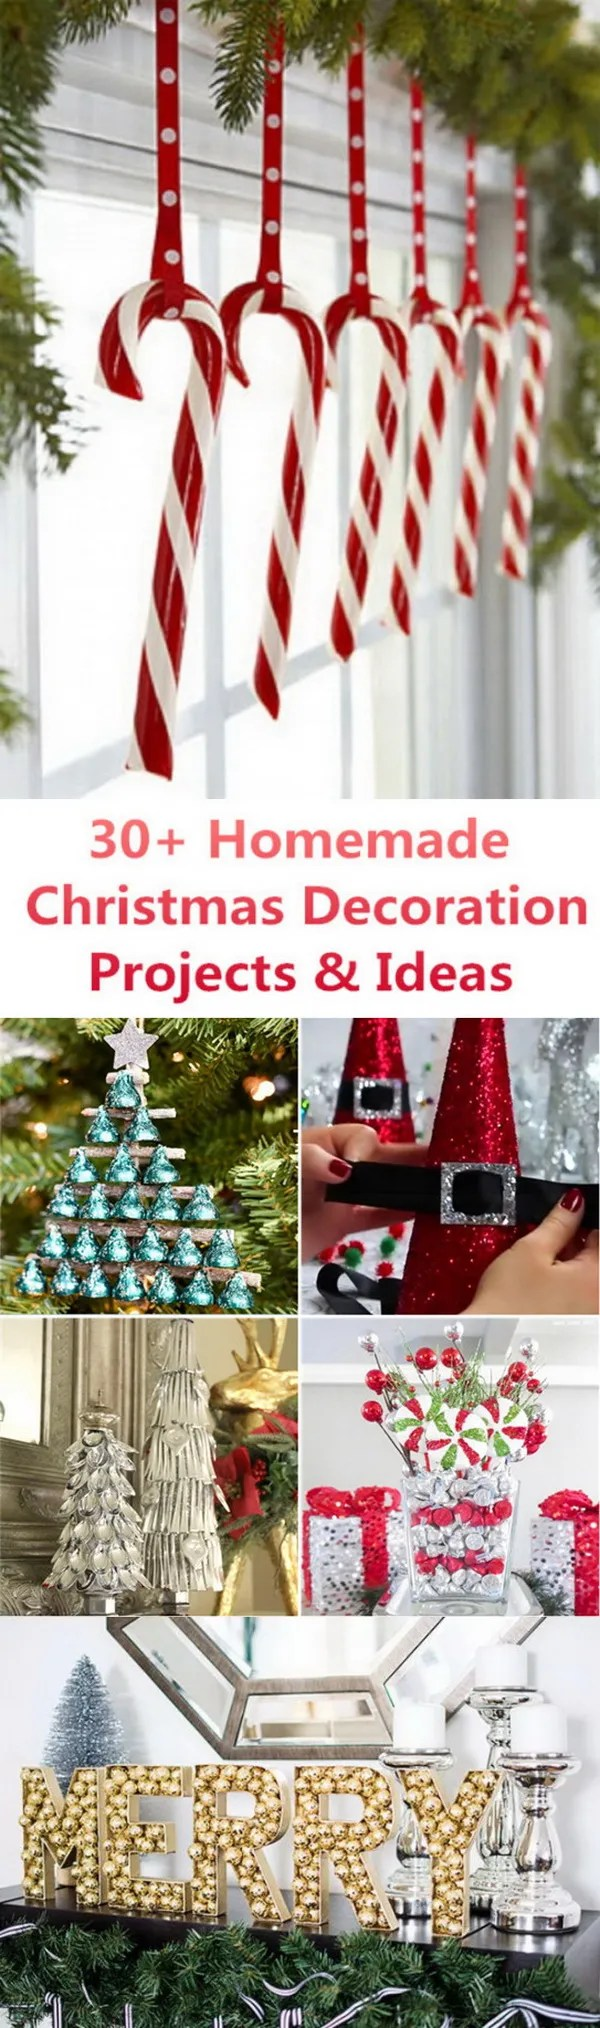 30 Homemade Christmas Decoration Projects Ideas For